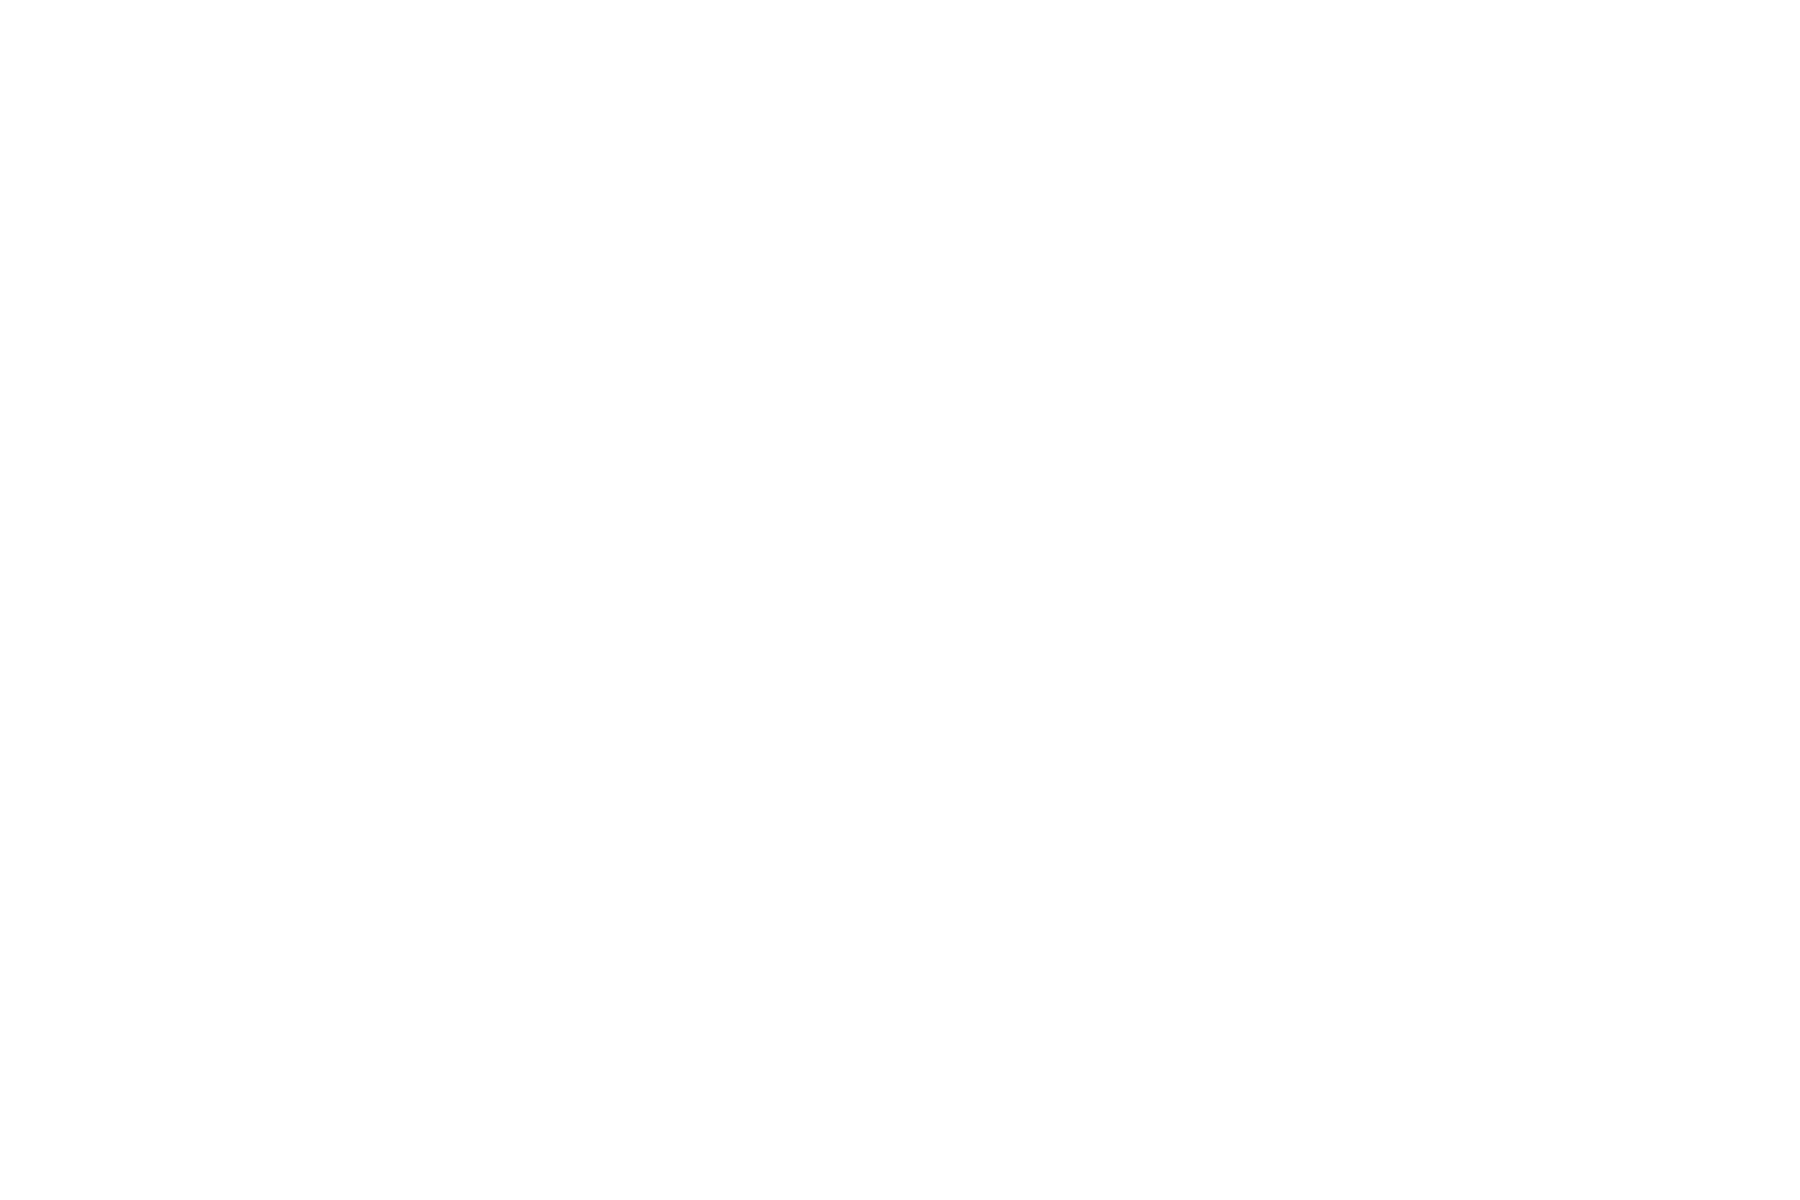 Curotec / Communicating the essence of a product